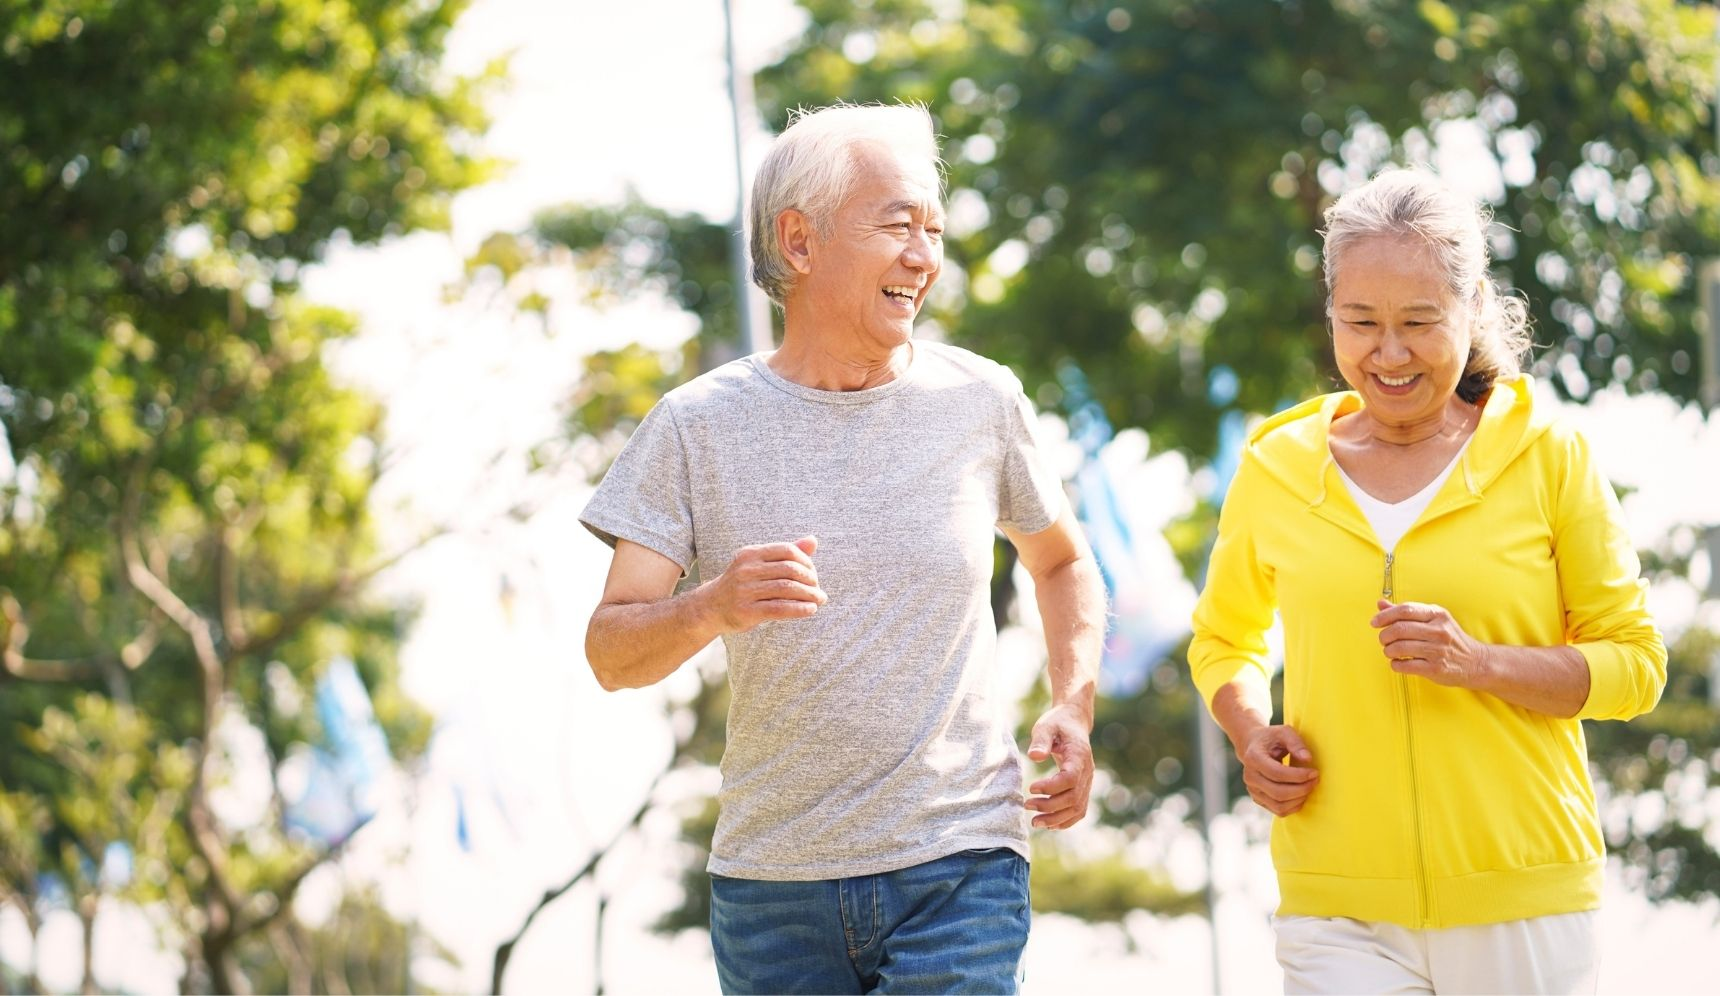 Senior Asian man and woman smiling and going for a jog together